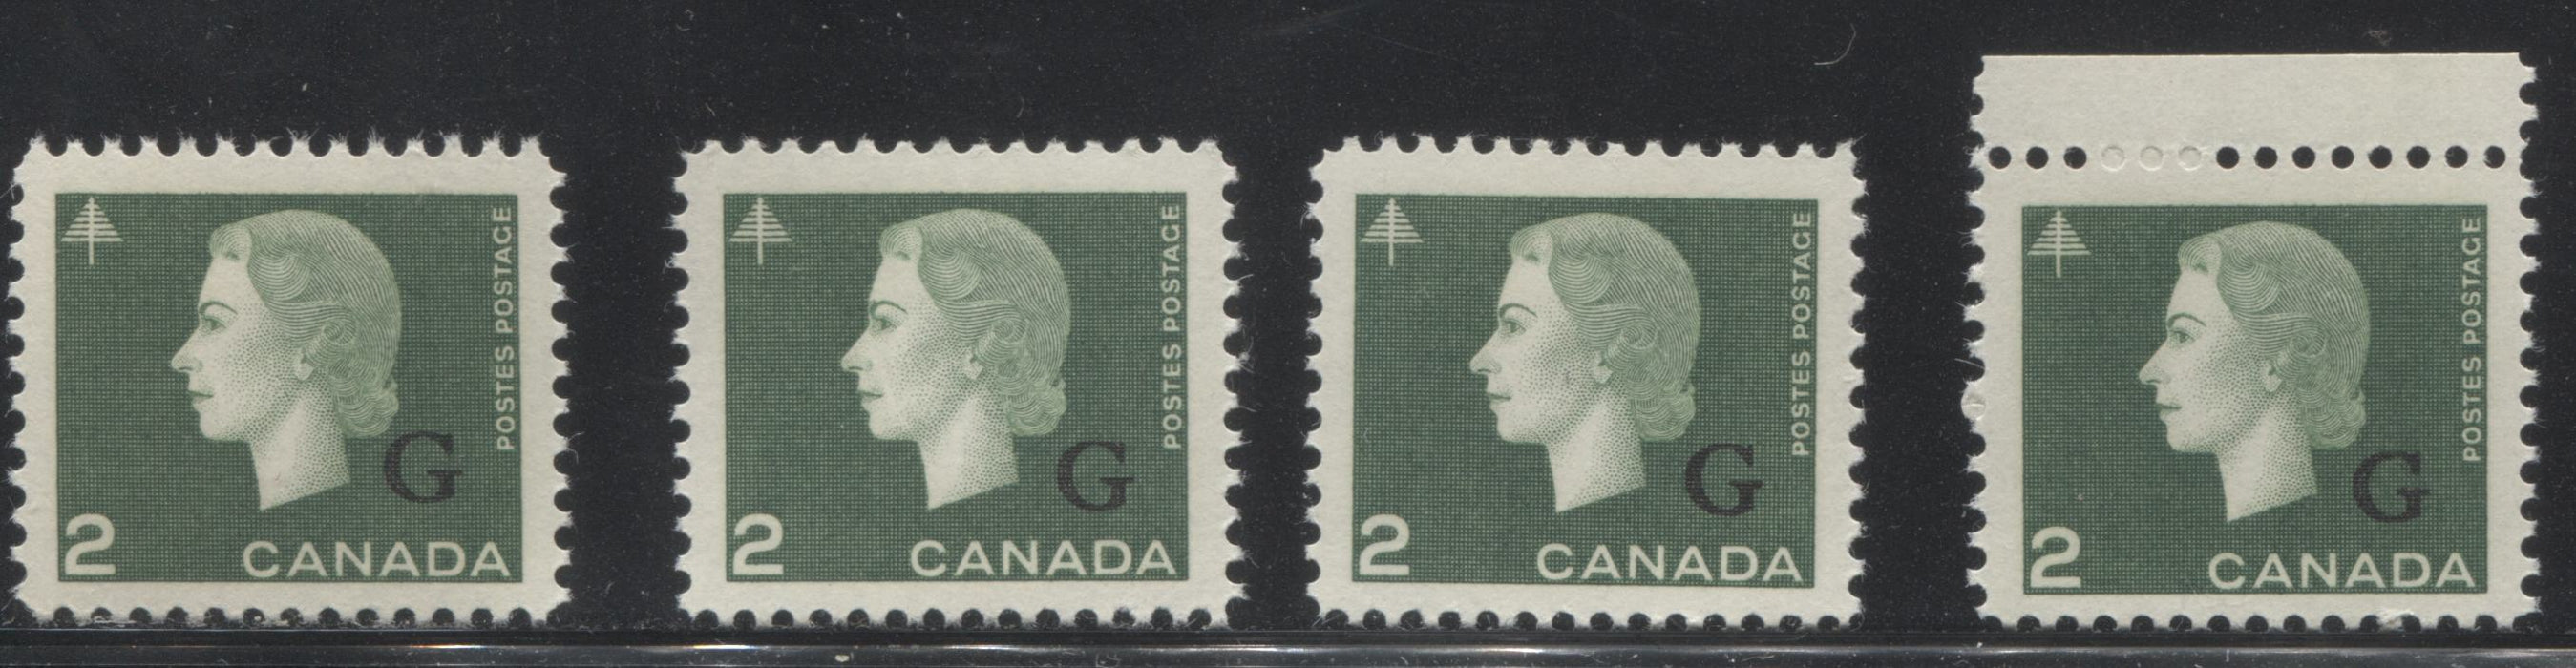 "Canada #O47 2c Green Queen Elizabeth II, 1962-1967 Cameo Issue, a Group of 4 VFNH Singles With ""G"" Overprint, Each a Different Perf"